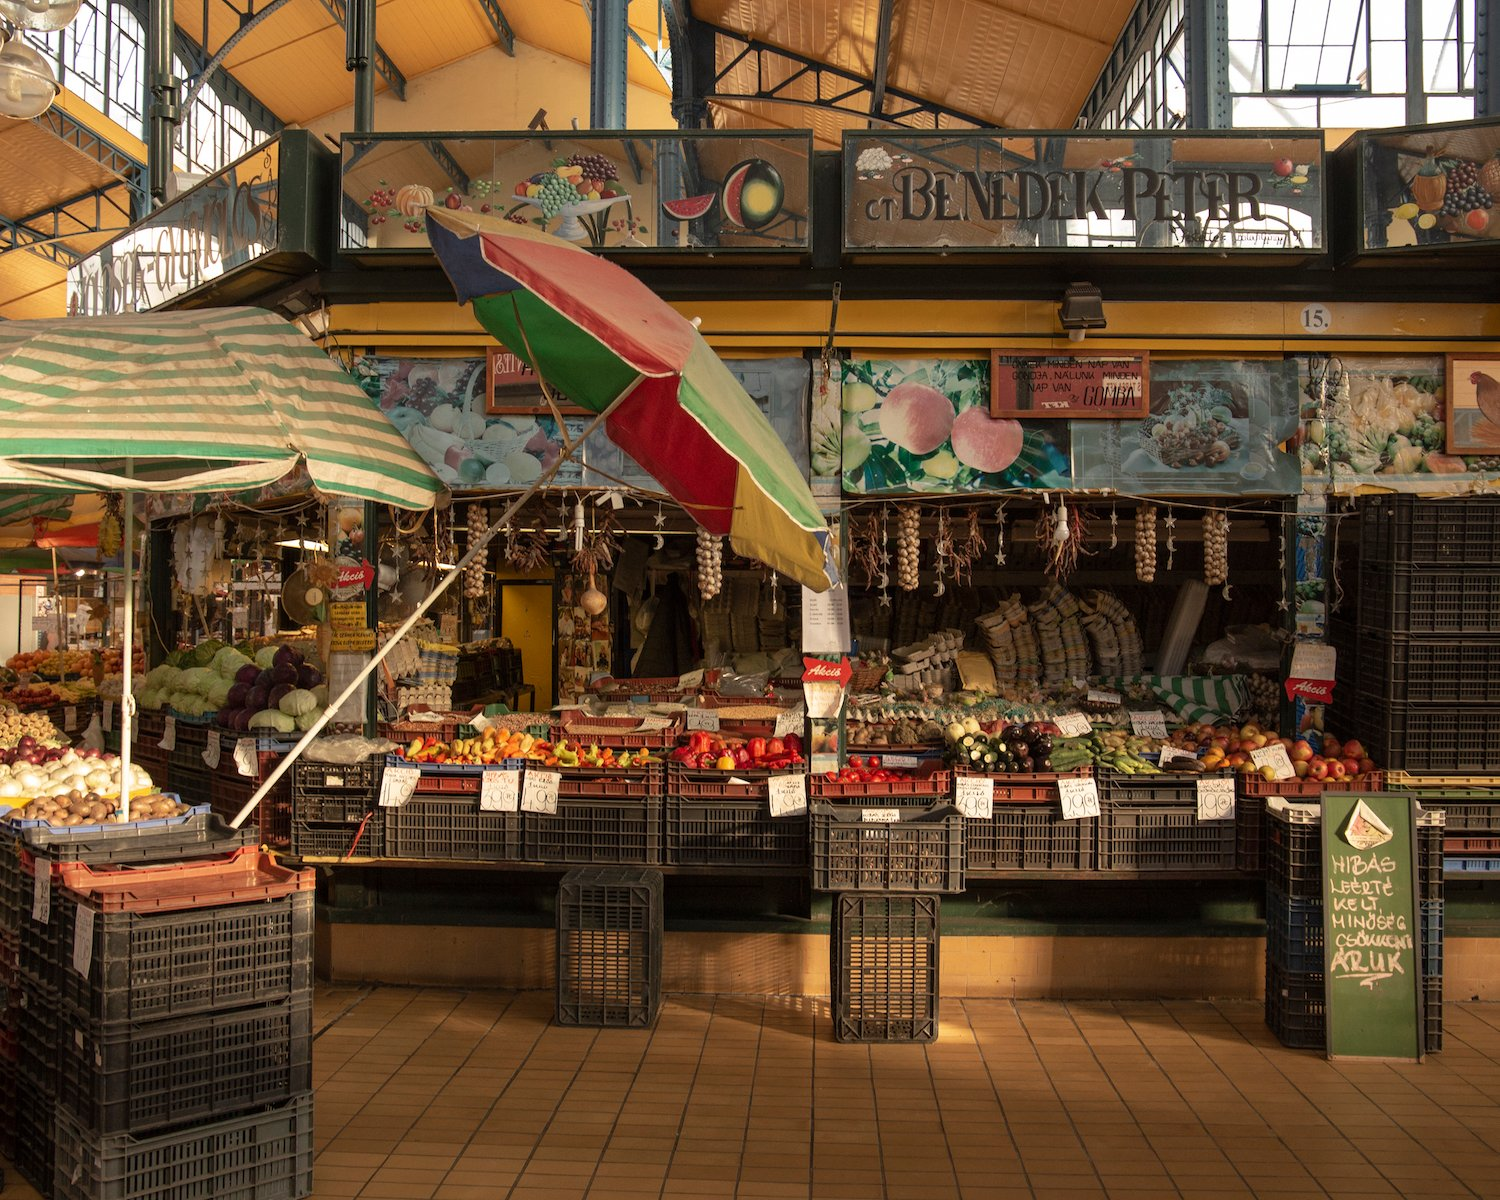 Inside the market. Image: Vizi András